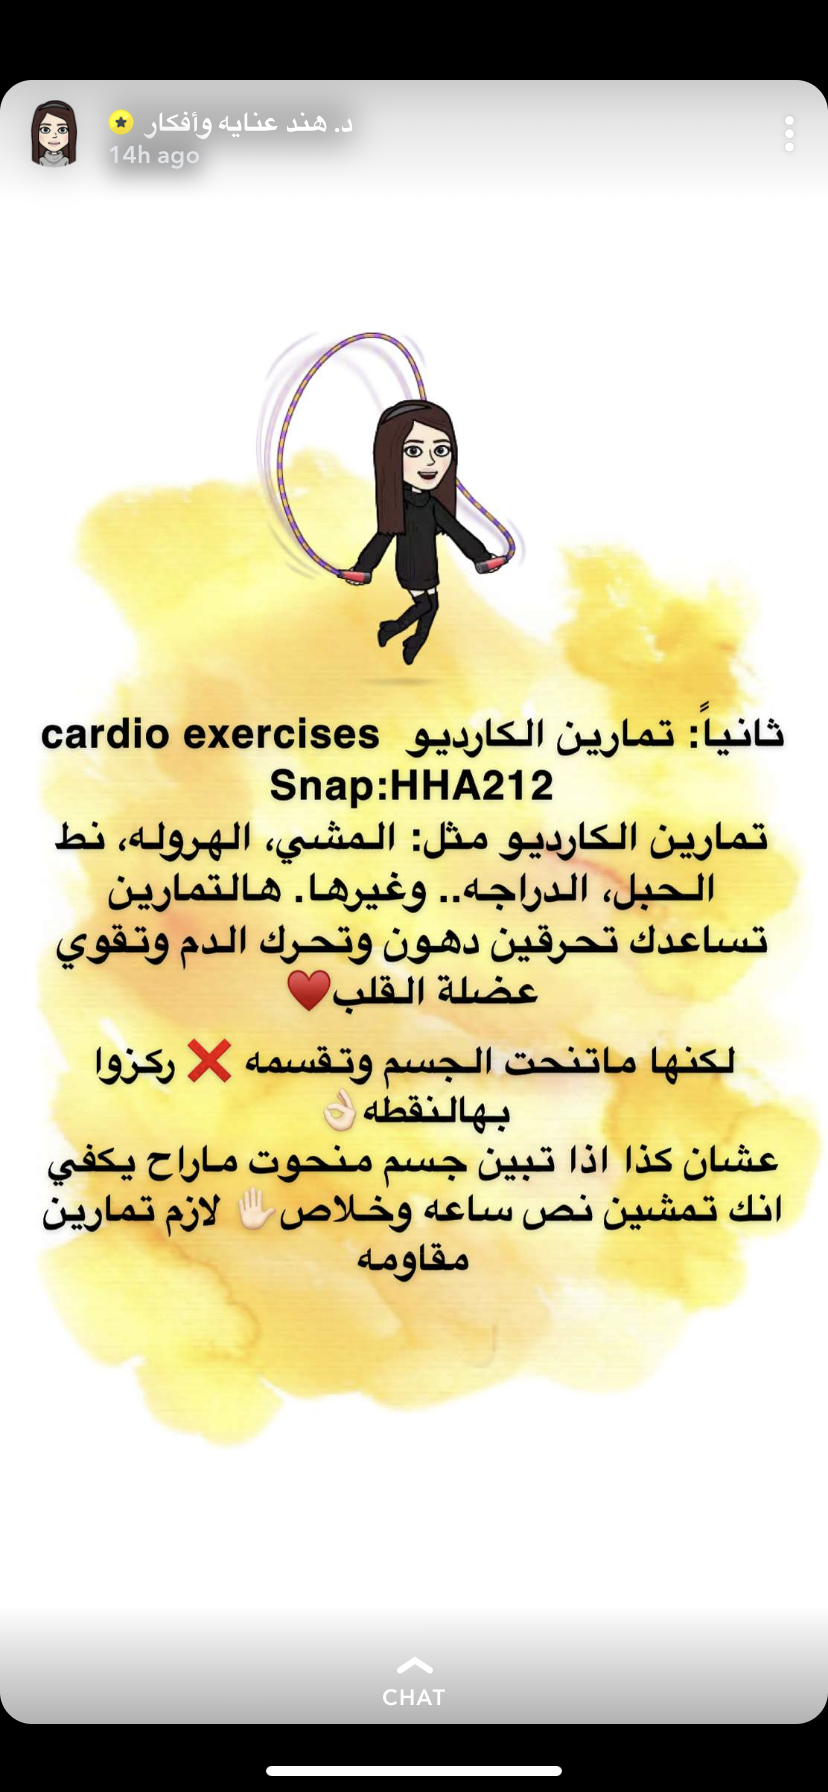 Pin By 星空 On Fitness Cardio Workout Cardio Exercise